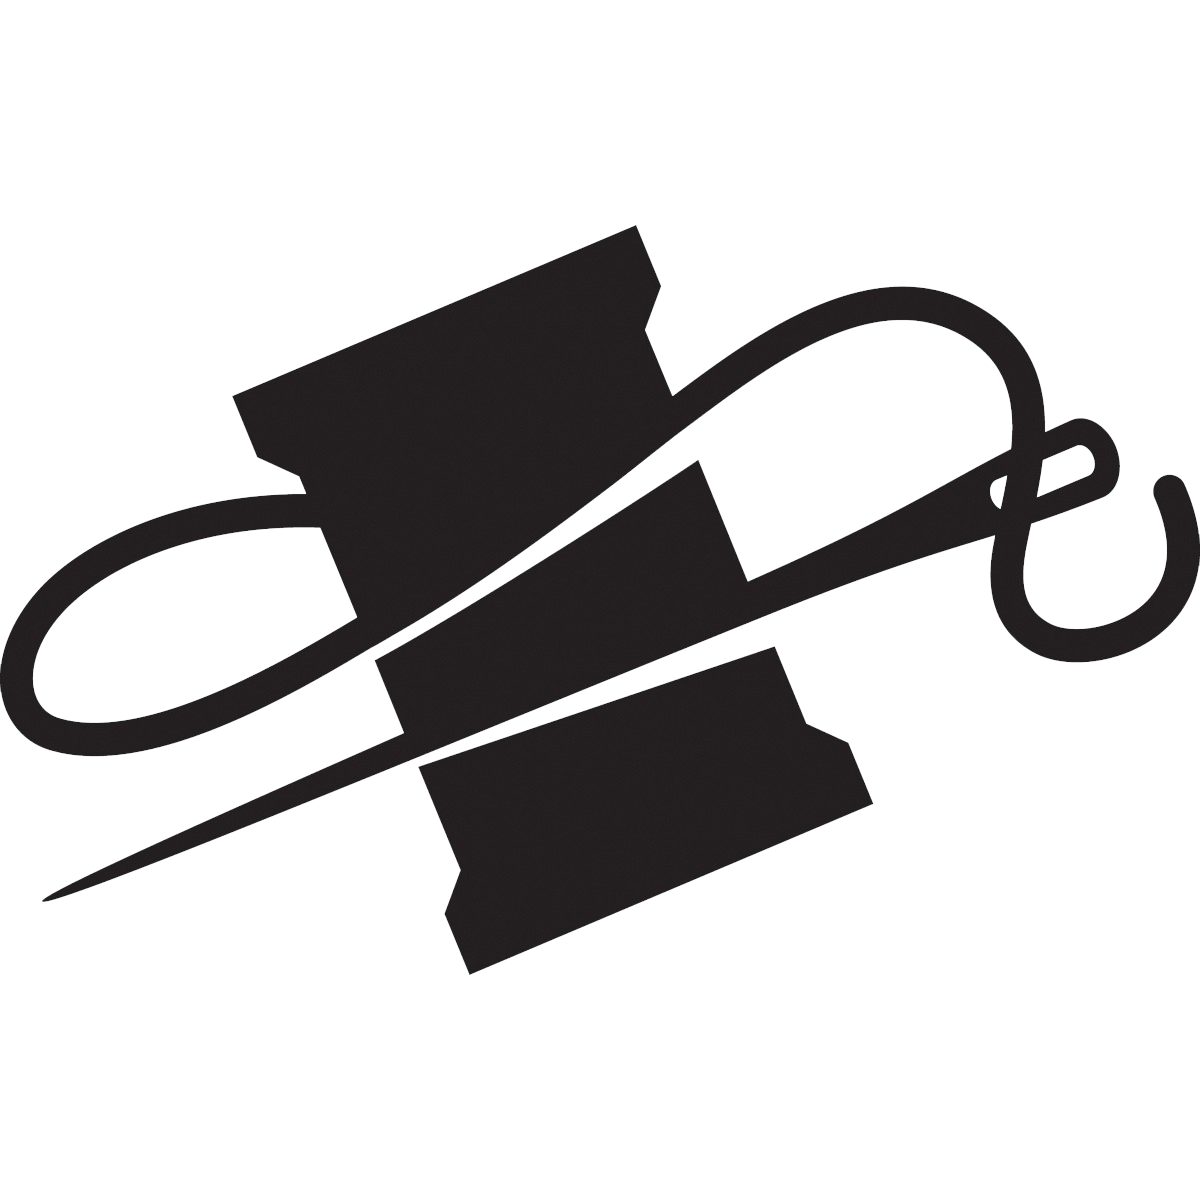 Needle and thread clipart png. Image result for sewing